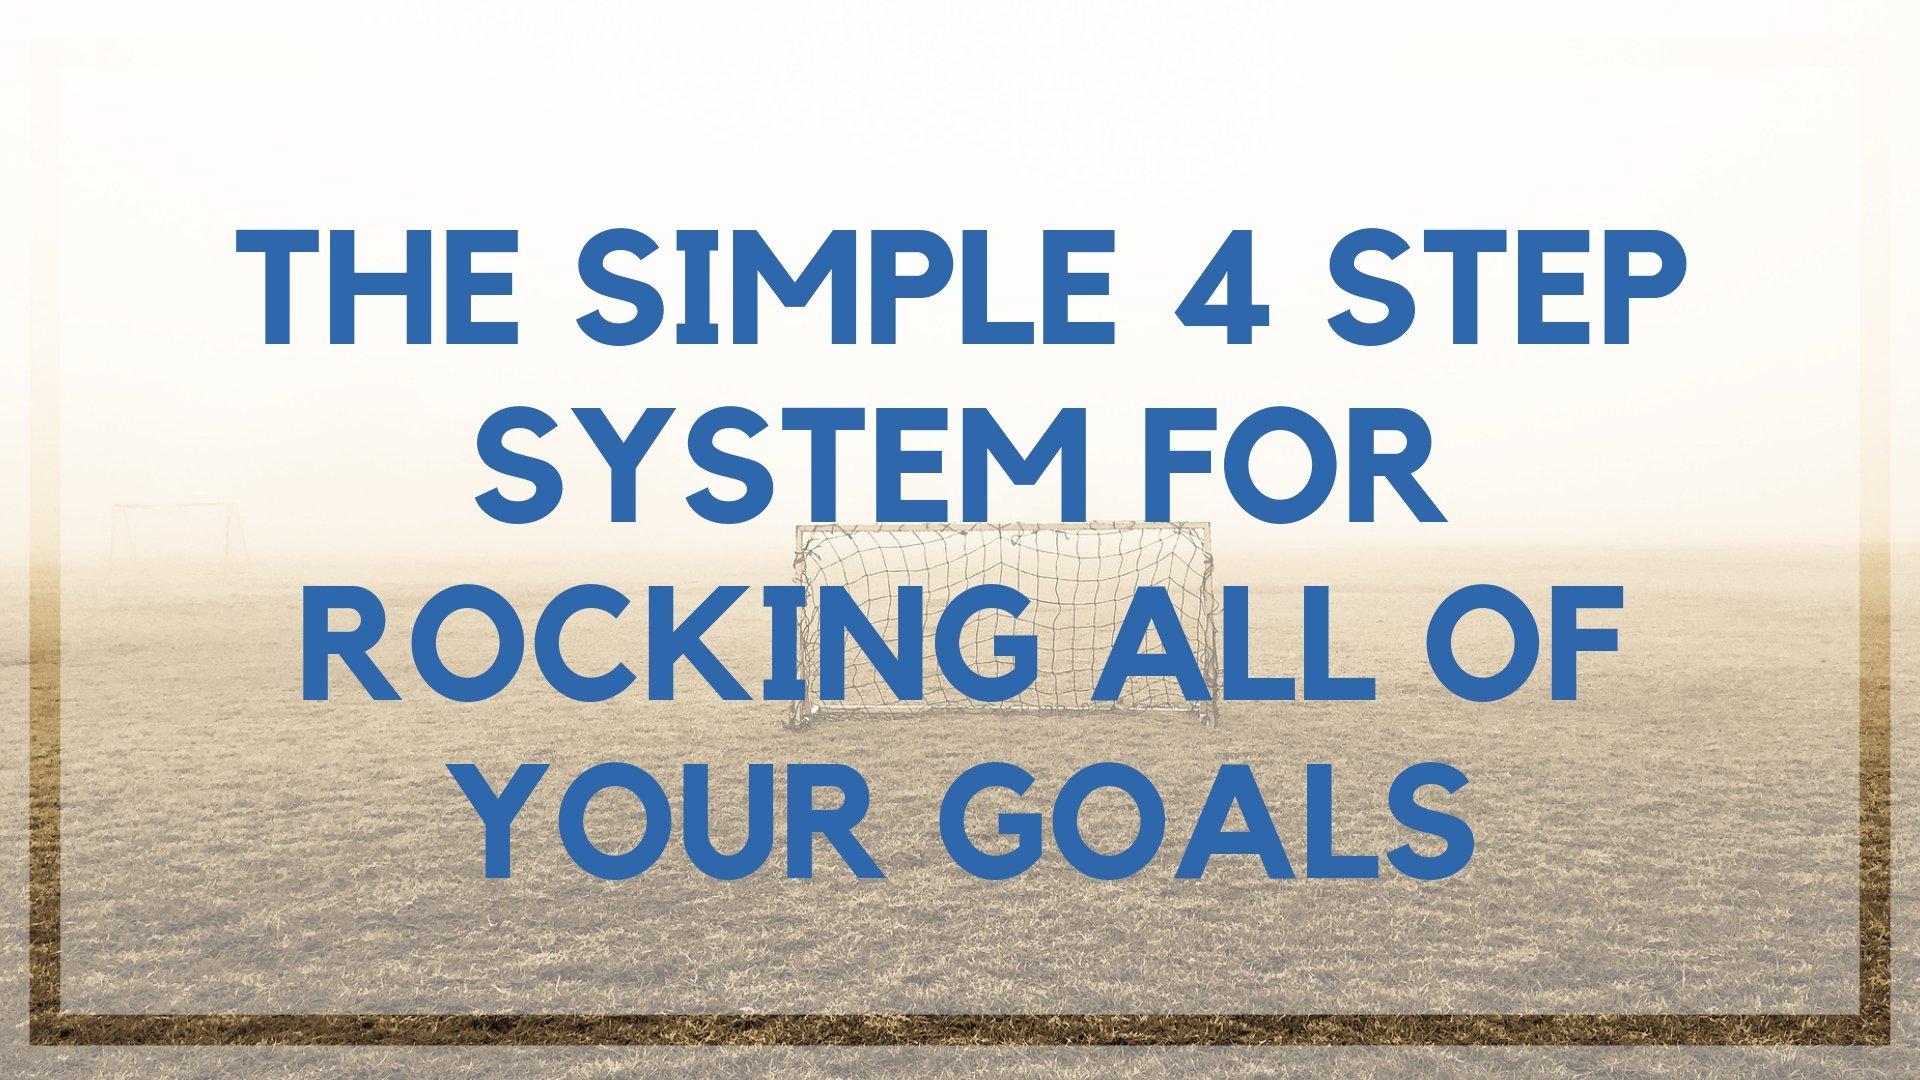 The Simple 4 Step System for Rocking All of Your Goals